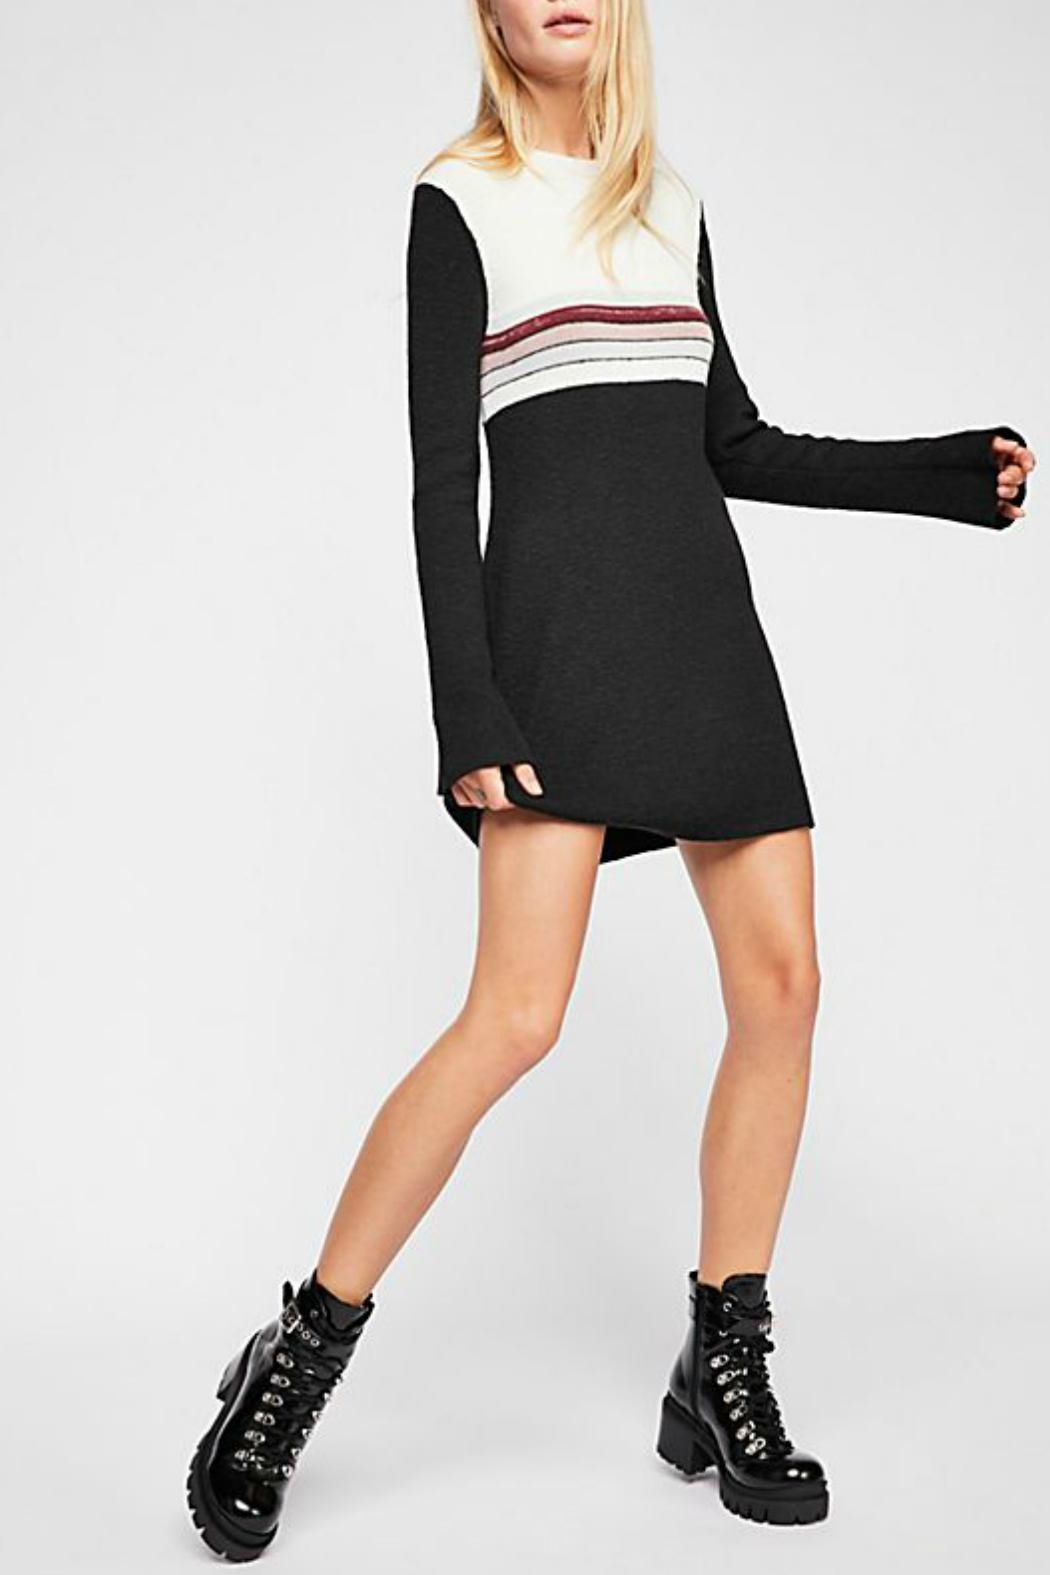 Free People Colorblock Sweater Dress - Main Image